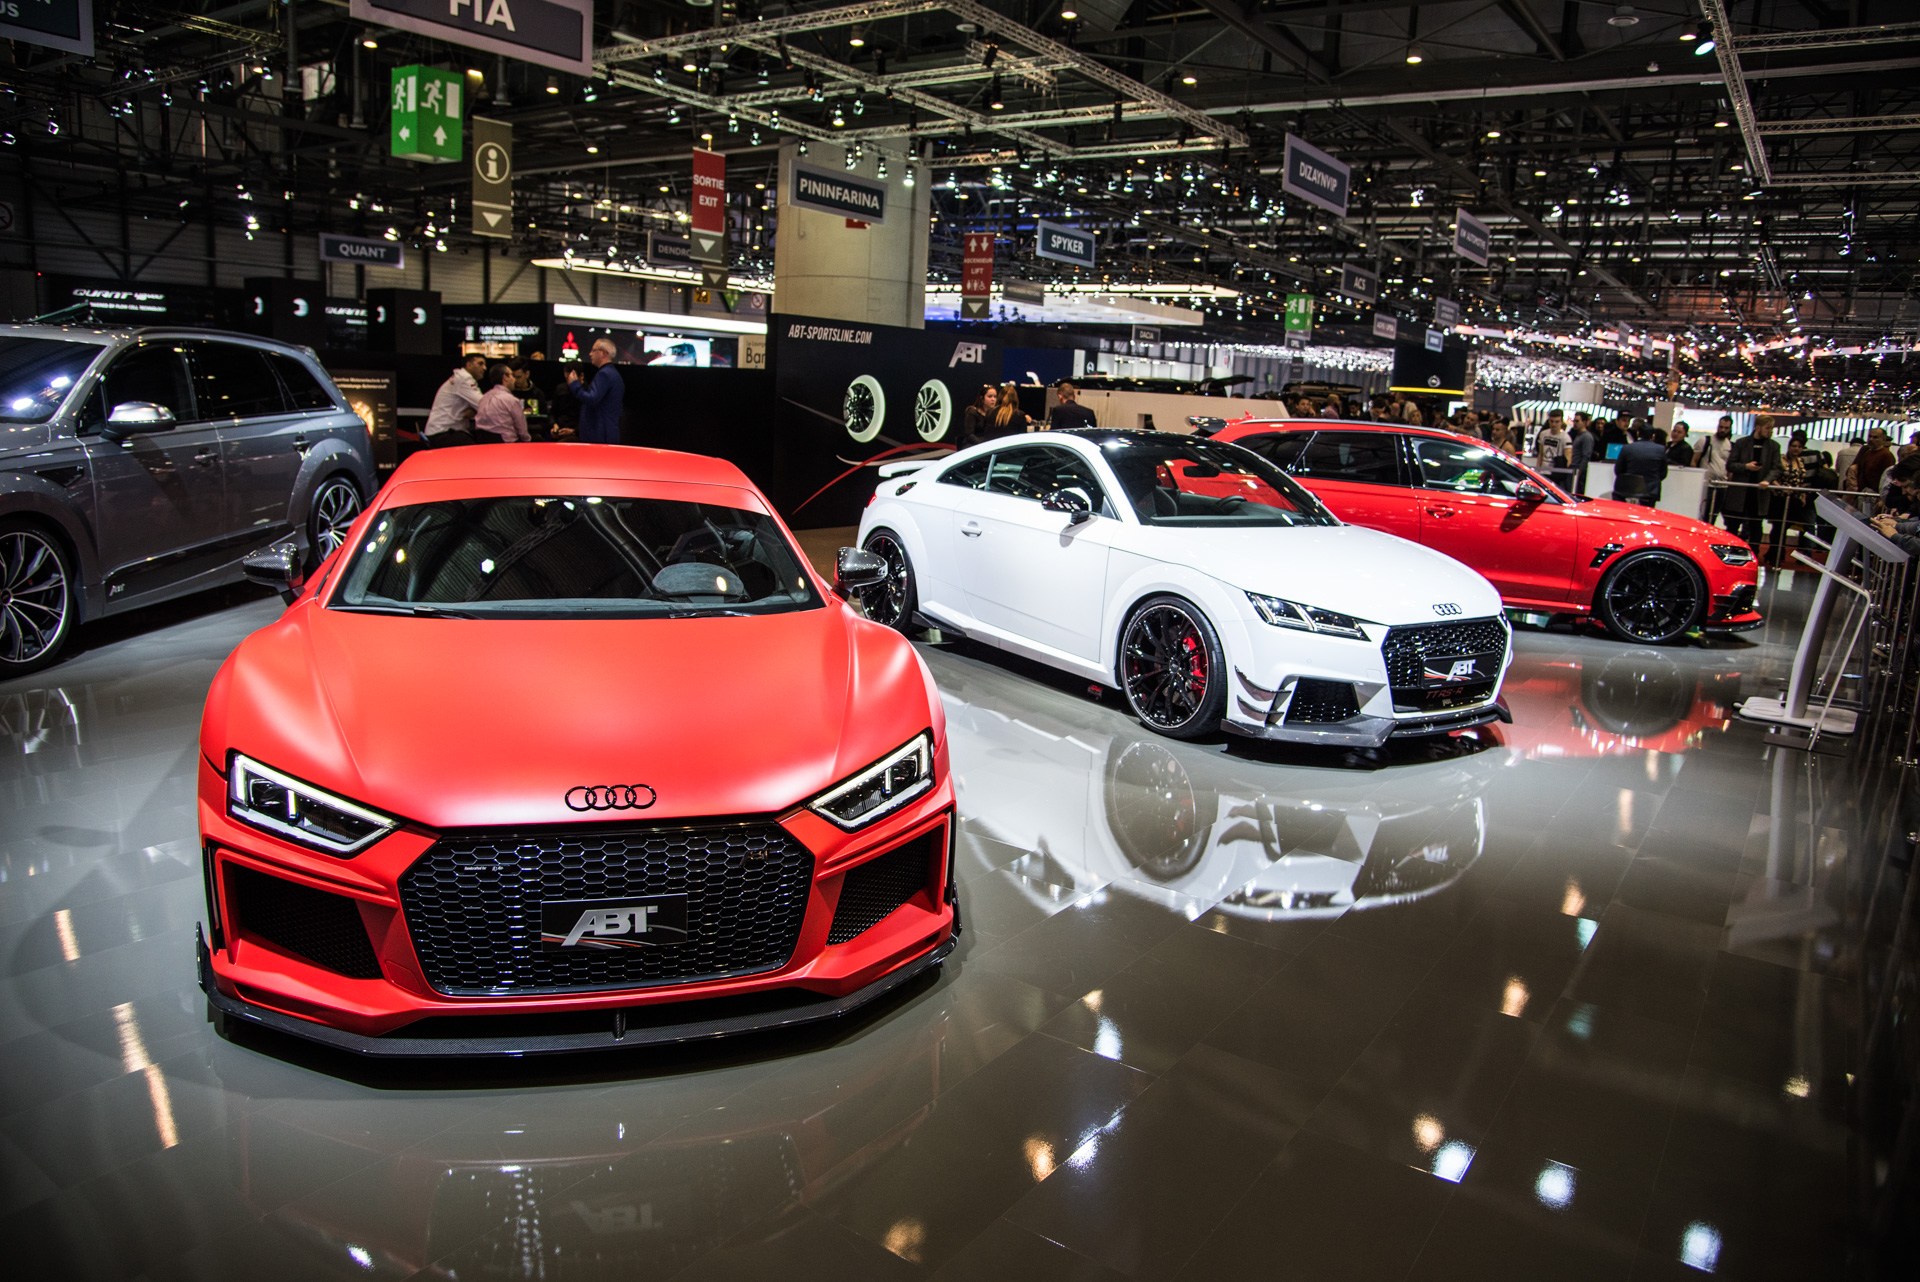 geneva-international-motor-show-igor-sinitsin-97